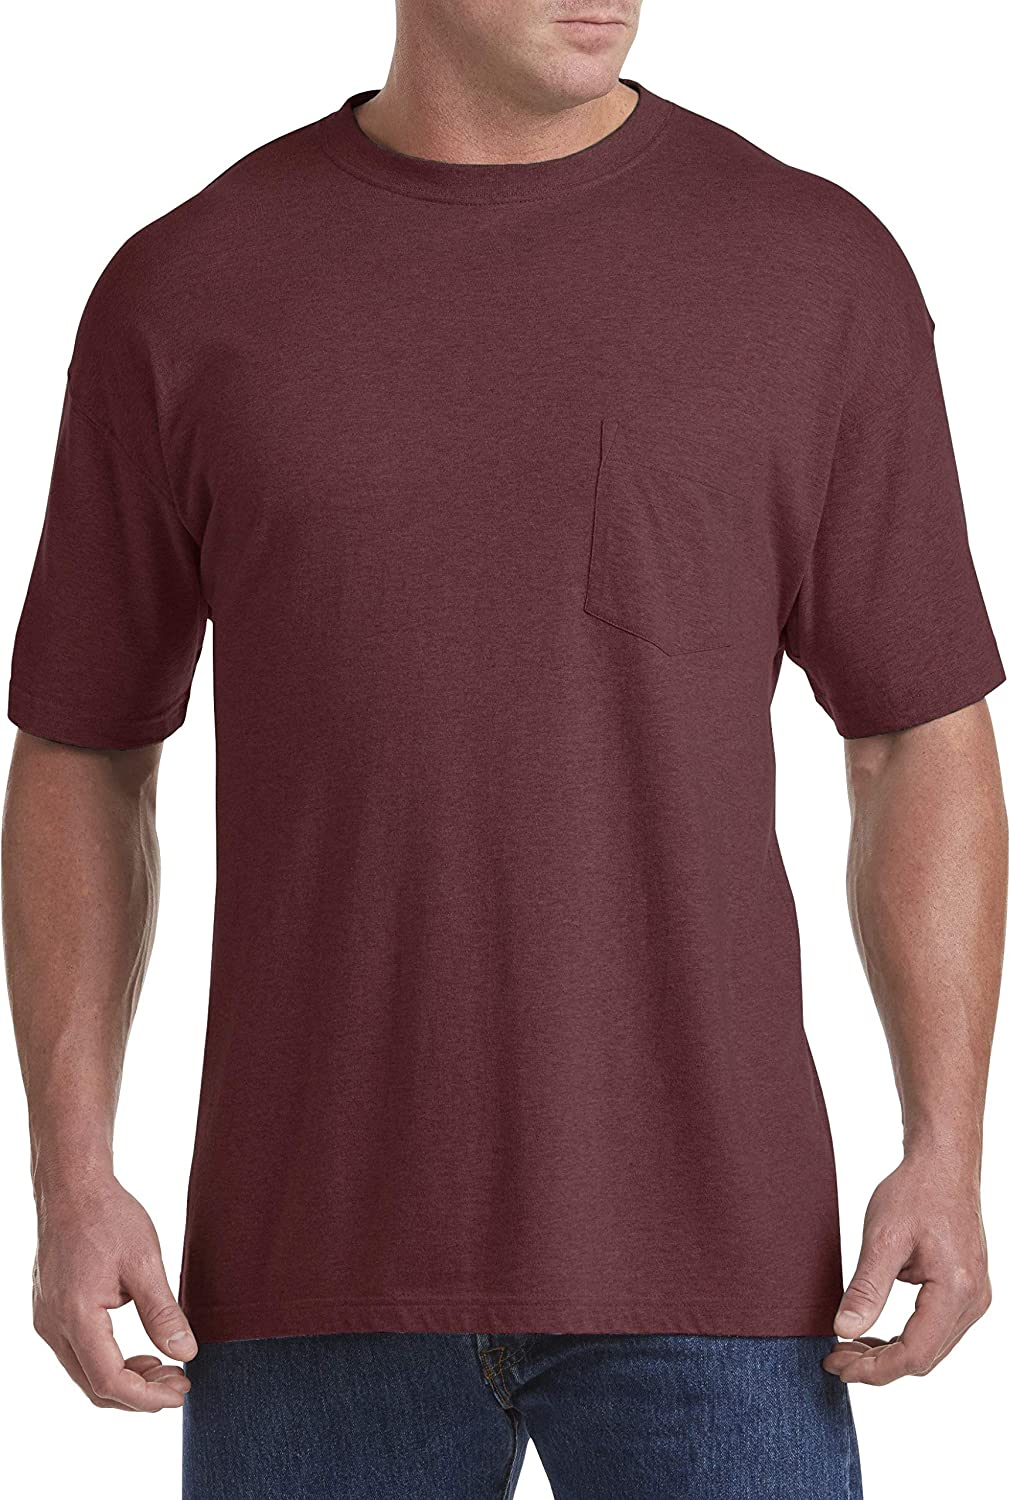 Harbor Bay by DXL Big and Tall Wicking Jersey Pocket T-Shirt